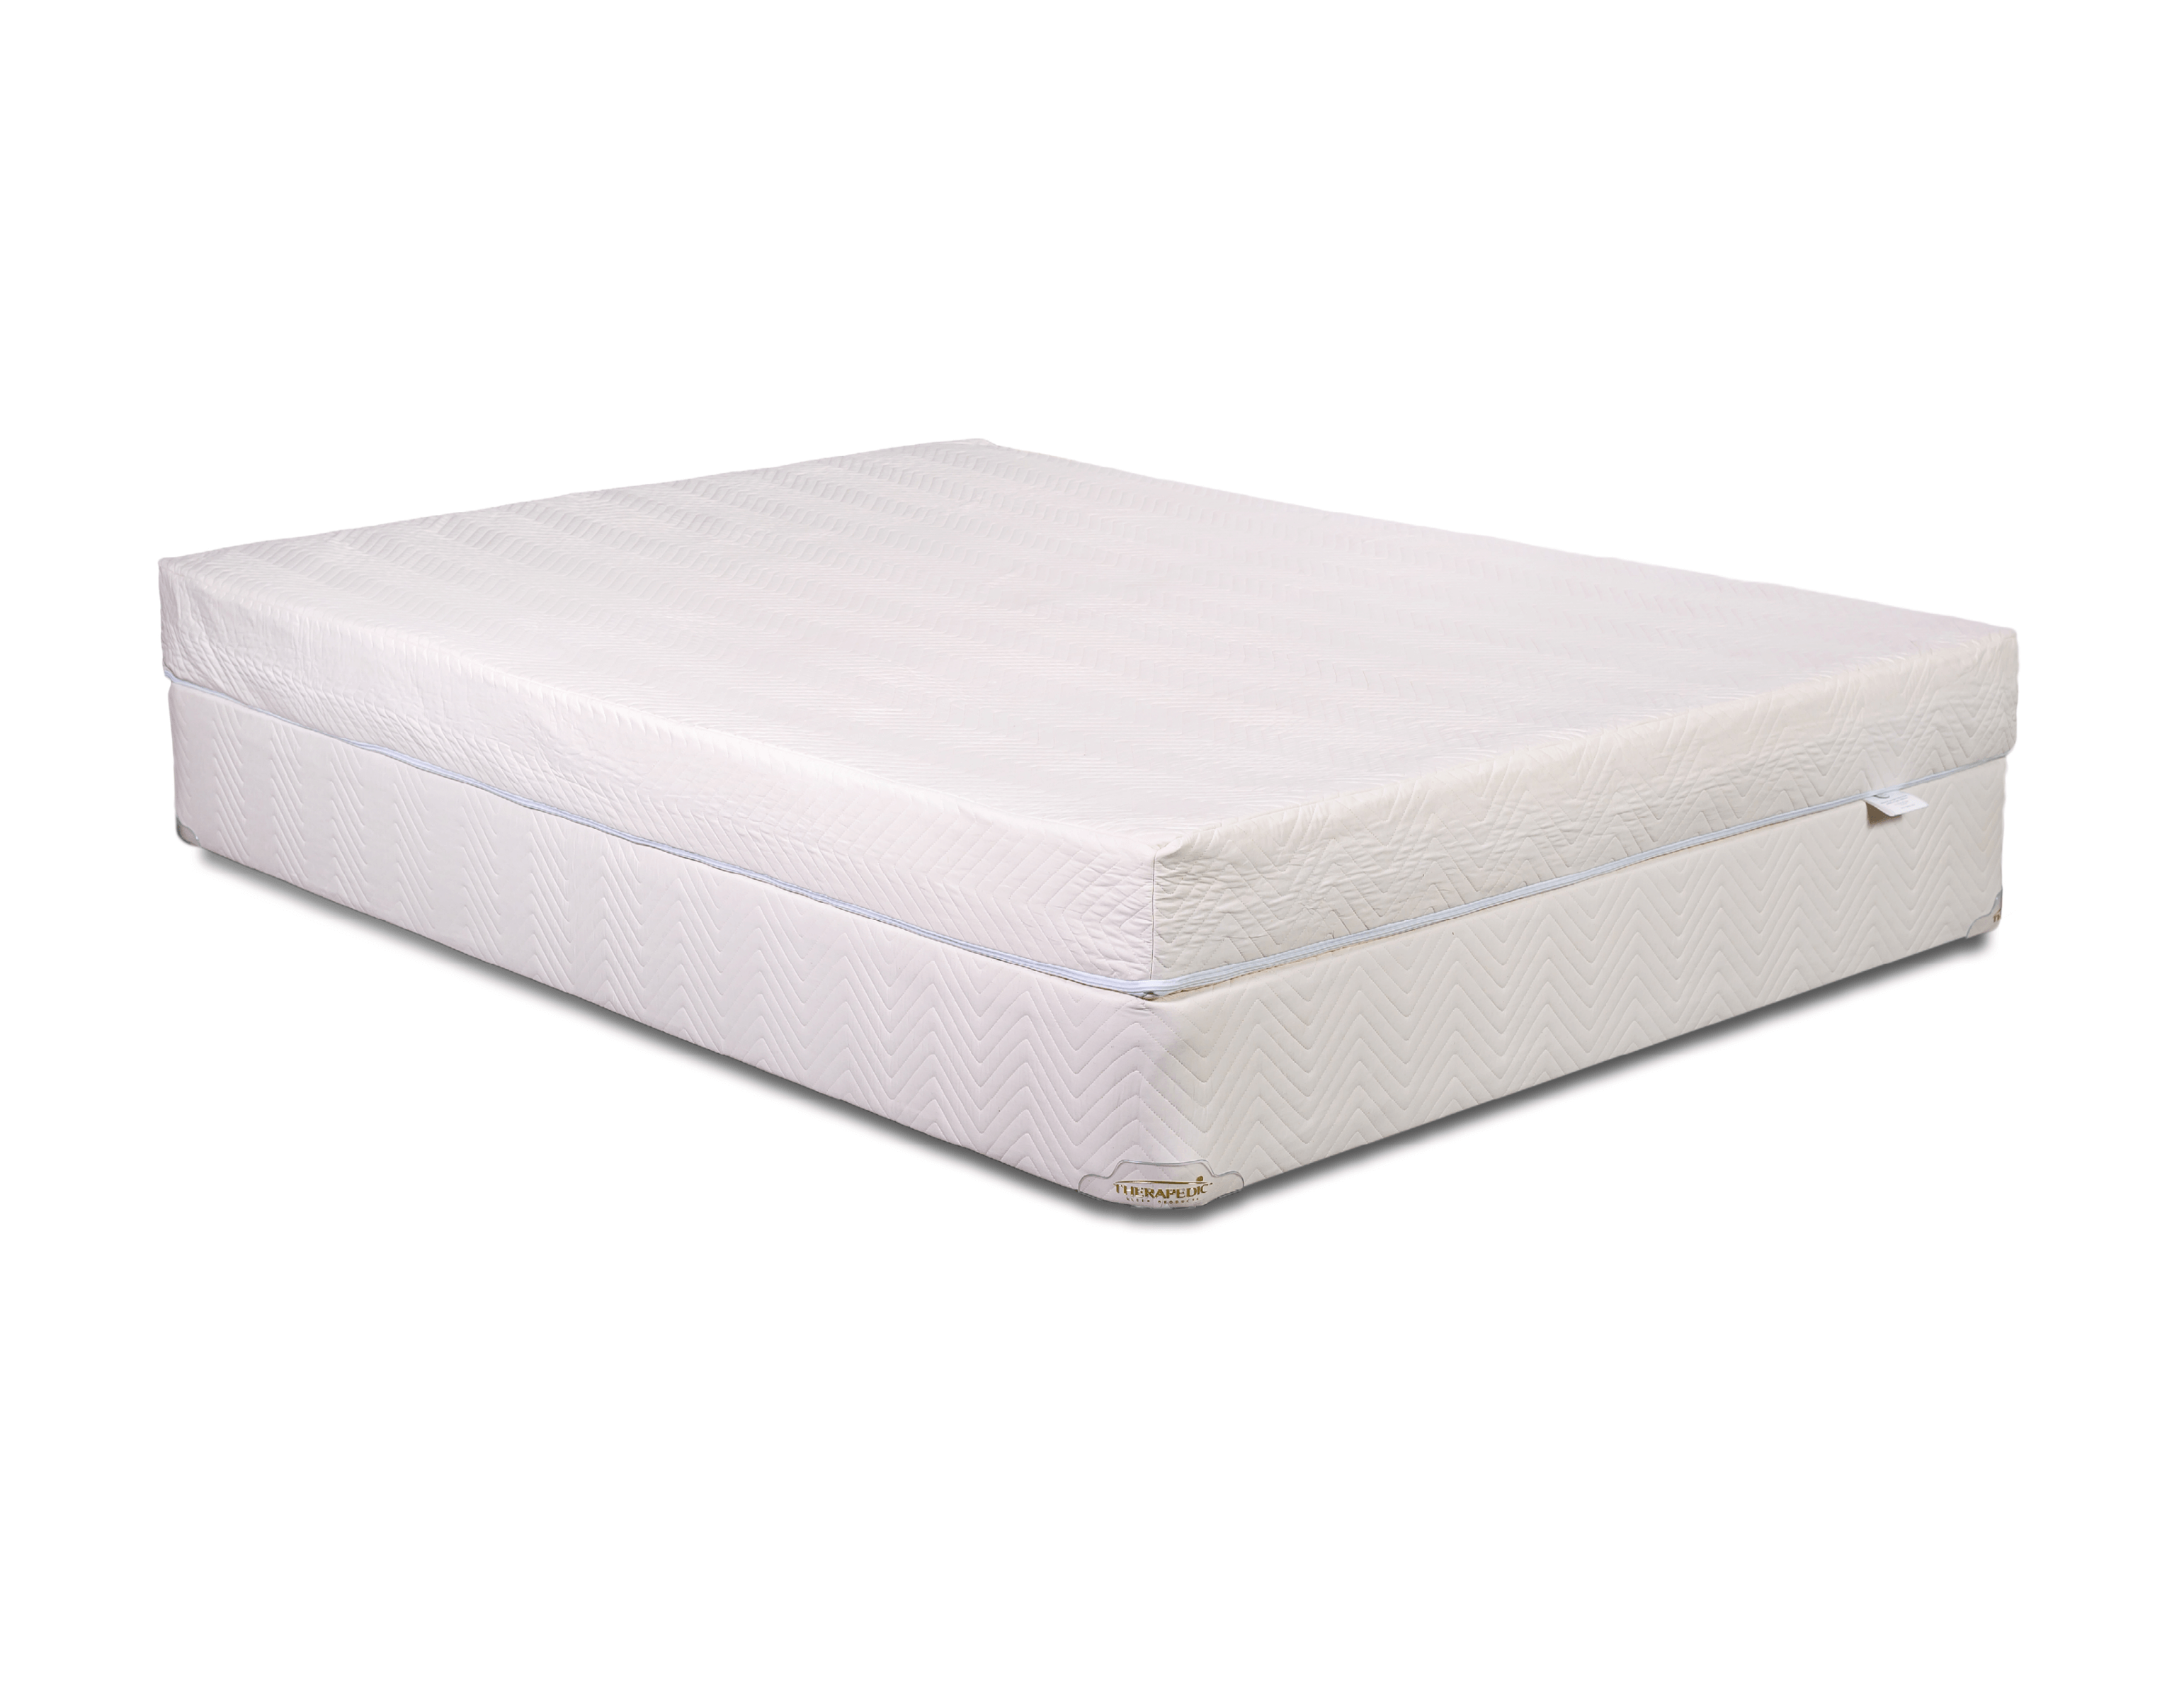 topper photo mattress natural bed latex com organic x of agrimarques